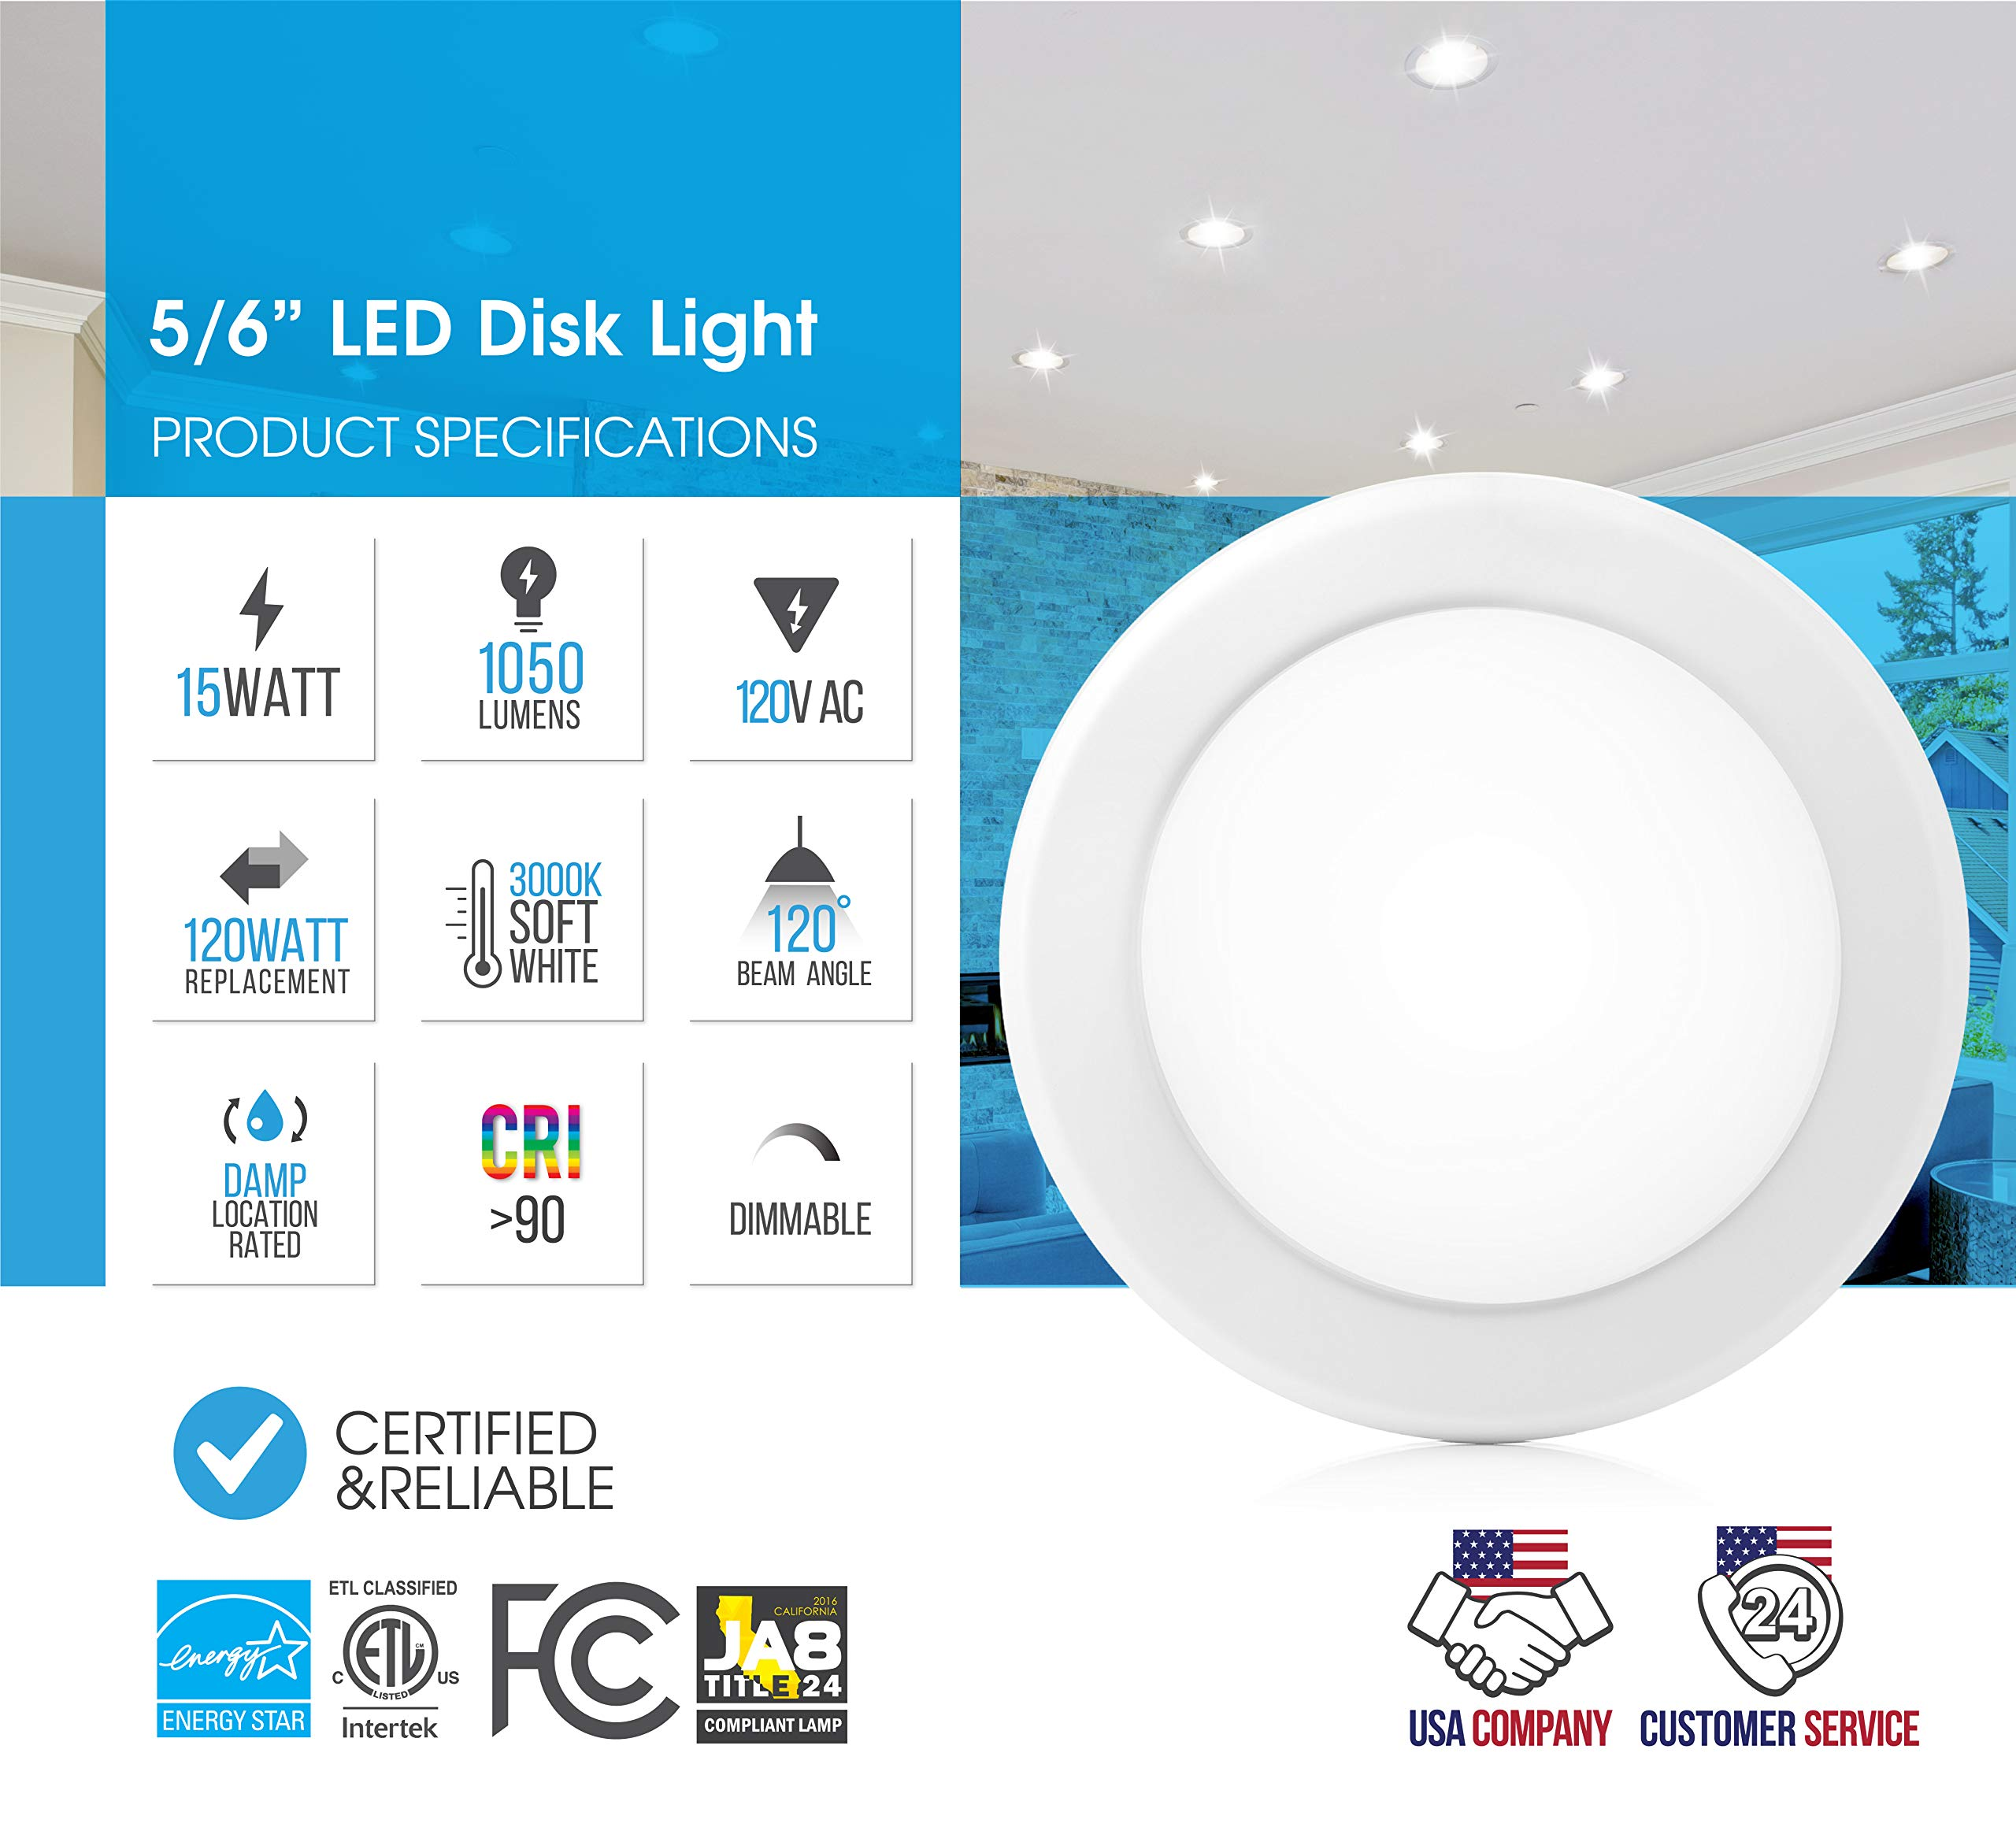 """Parmida (24 Pack) 5/6"""" Dimmable LED Disk Light Flush Mount Recessed Retrofit Ceiling Lights, 15W (120W Replacement), 3000K (Soft White), Energy Star, Installs into Junction Box Or Recessed Can, 1050lm by Parmida LED Technologies (Image #2)"""